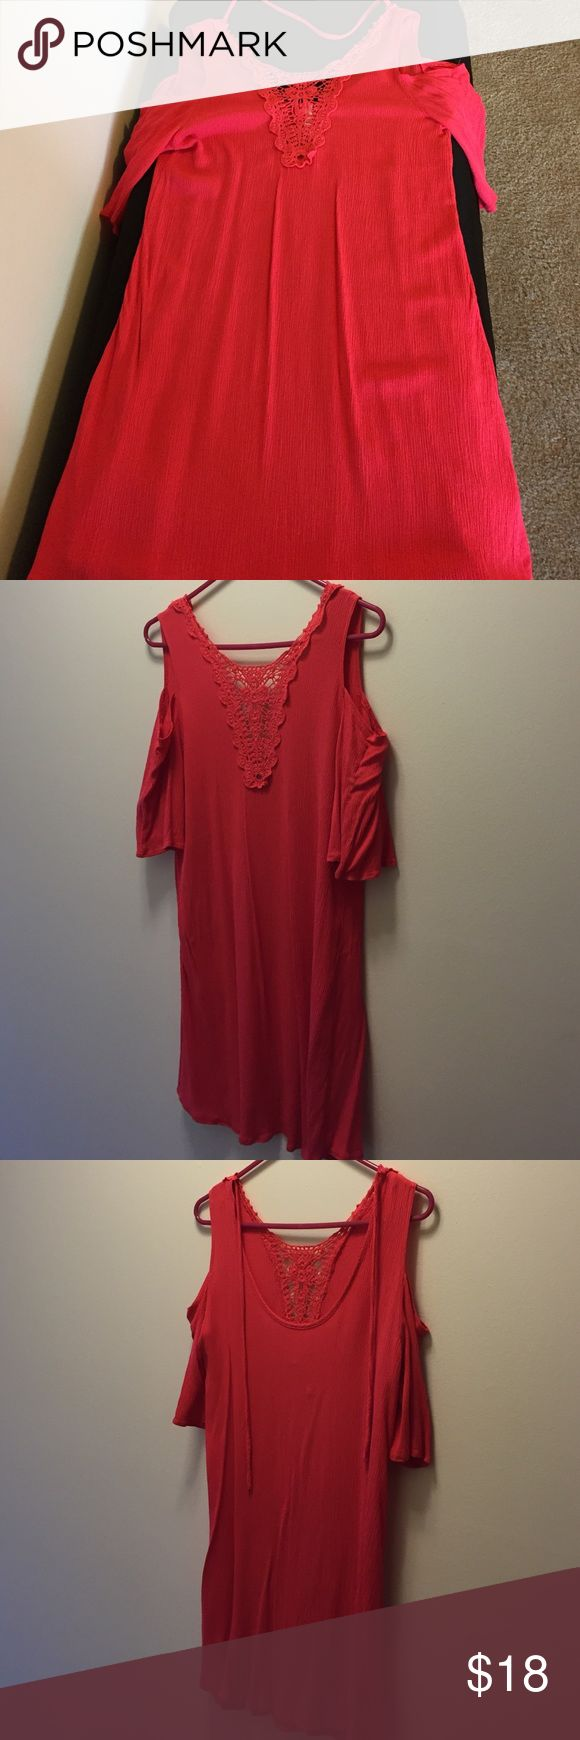 Tunic or swim suit cover up Super cute tunic or swim suit cover up. Coral color in good condition. 100% Polyester. Cut out shoulders and straps that tie up around the back of the neck. This is adorable with leggings or as a dress with cowboy boots. I'm 5'4 and it comes mid thigh on me. Brand is Noble U Tops Tunics